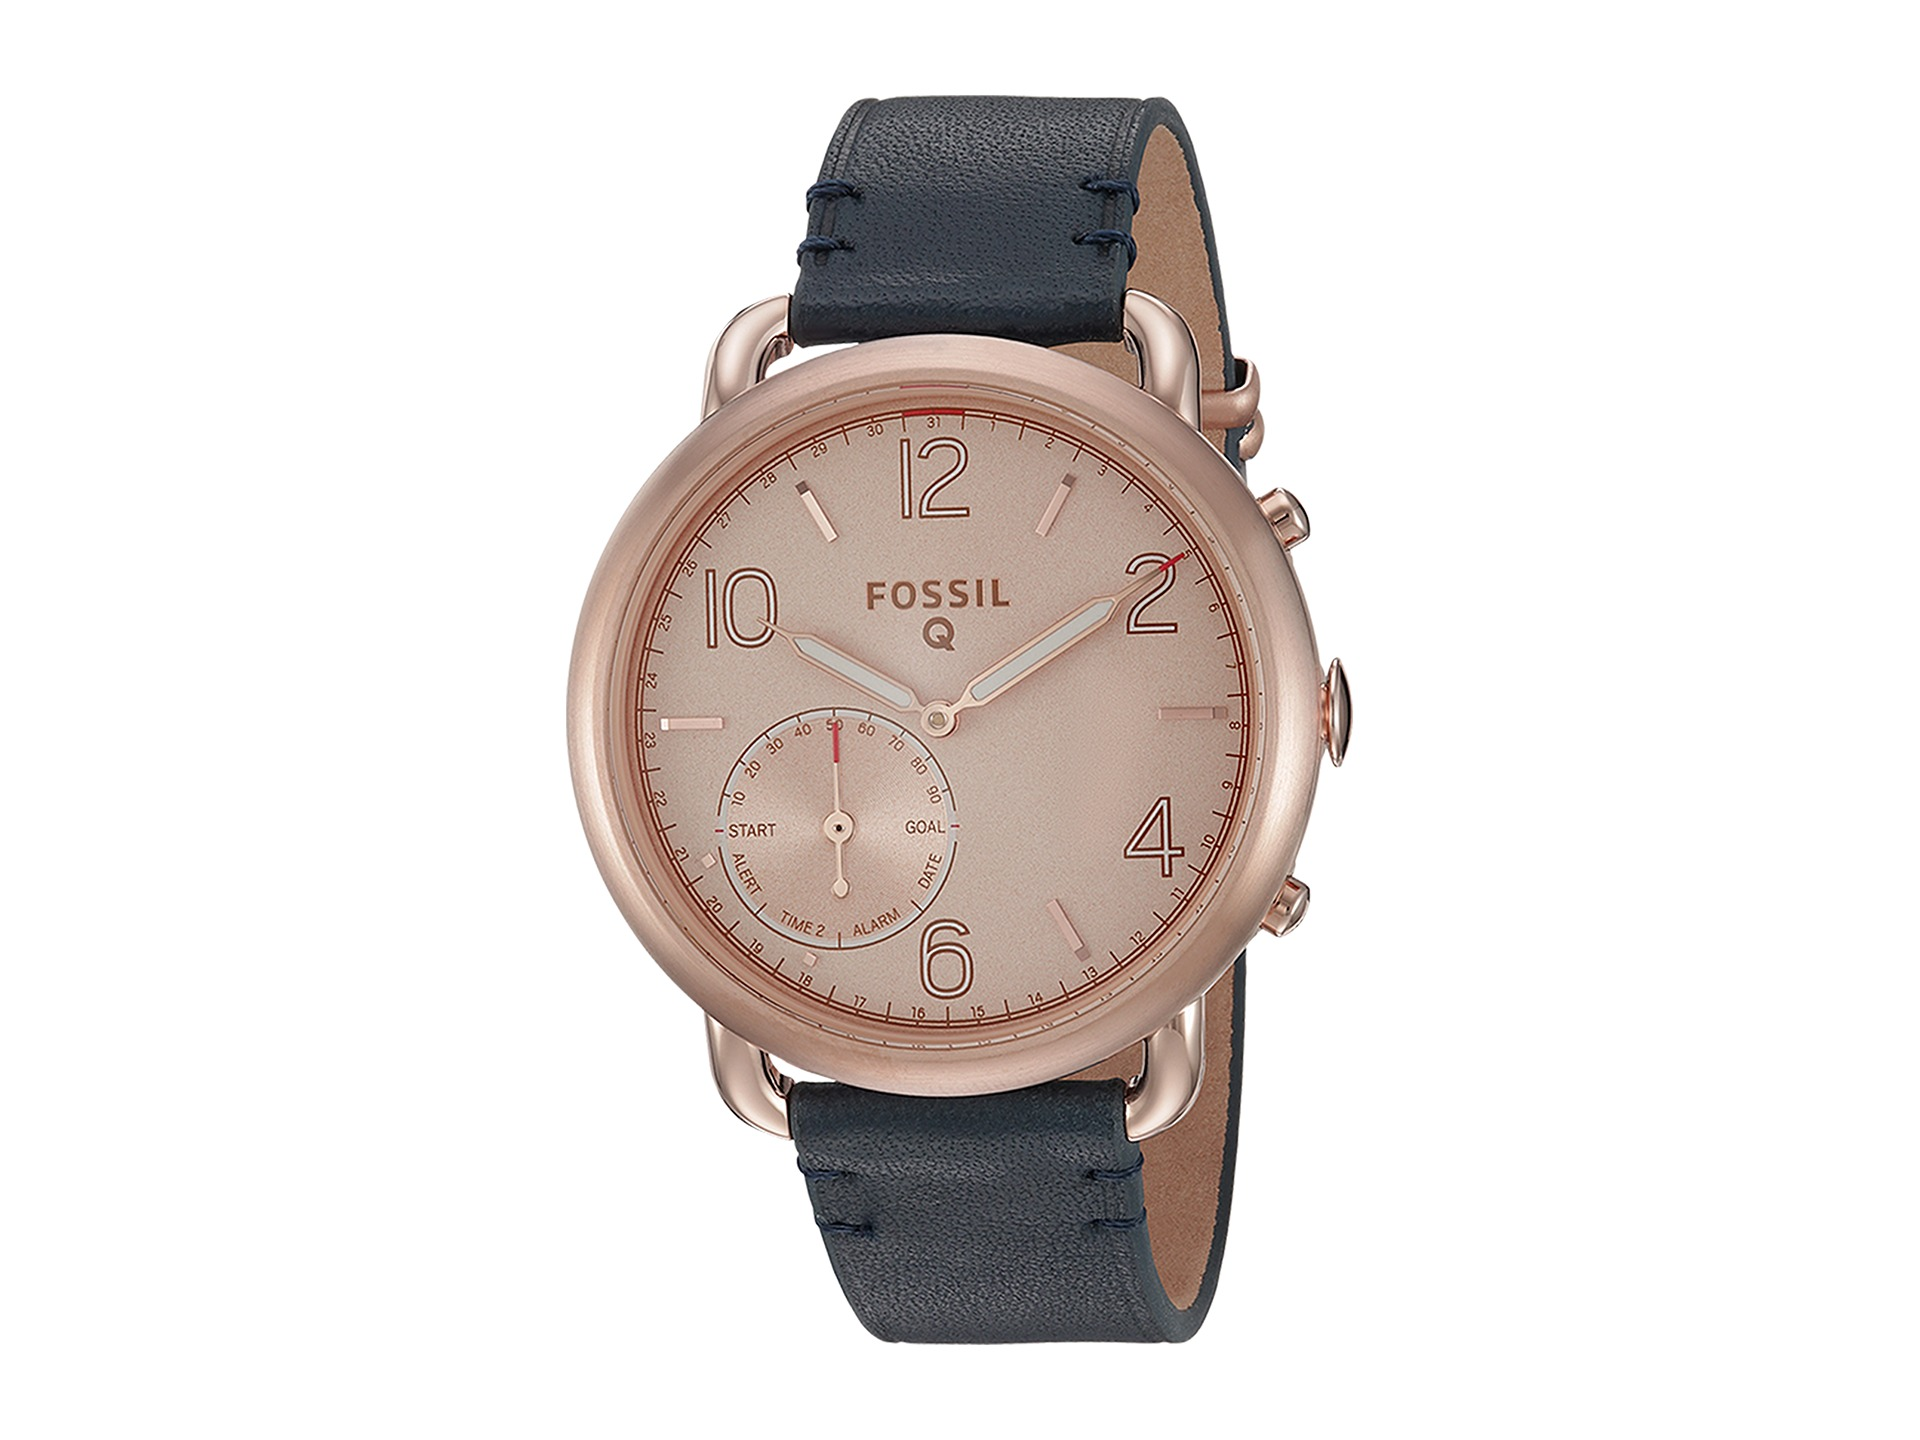 fossil q q tailor hybrid smartwatch ftw1128 rose gold sienna leather free. Black Bedroom Furniture Sets. Home Design Ideas